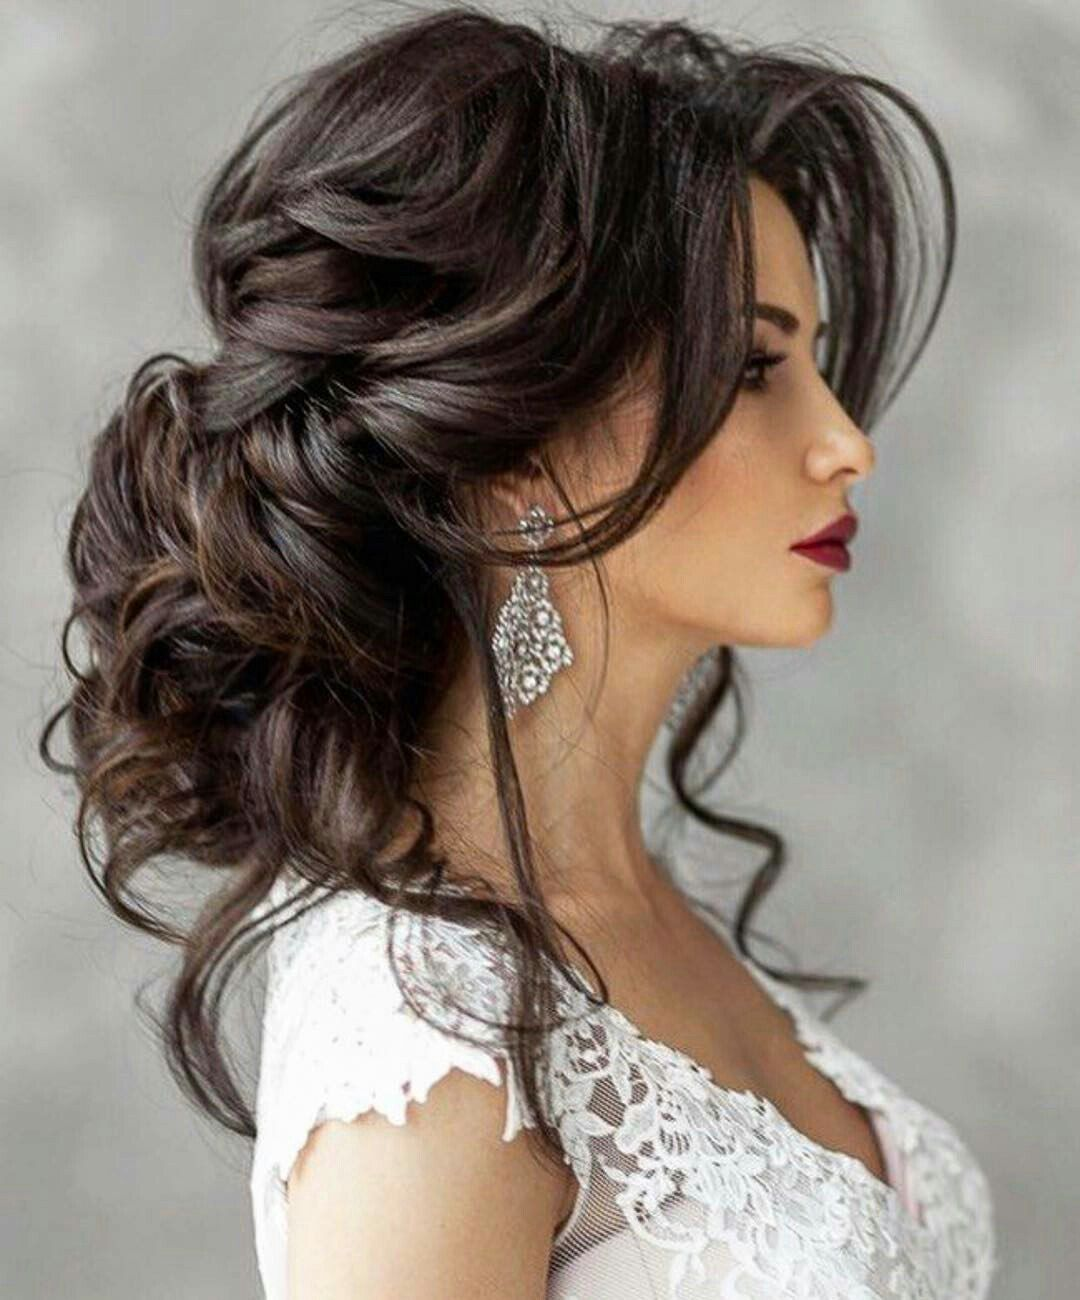 greek hairstyles: grecian hairstyle ideas for women | prom